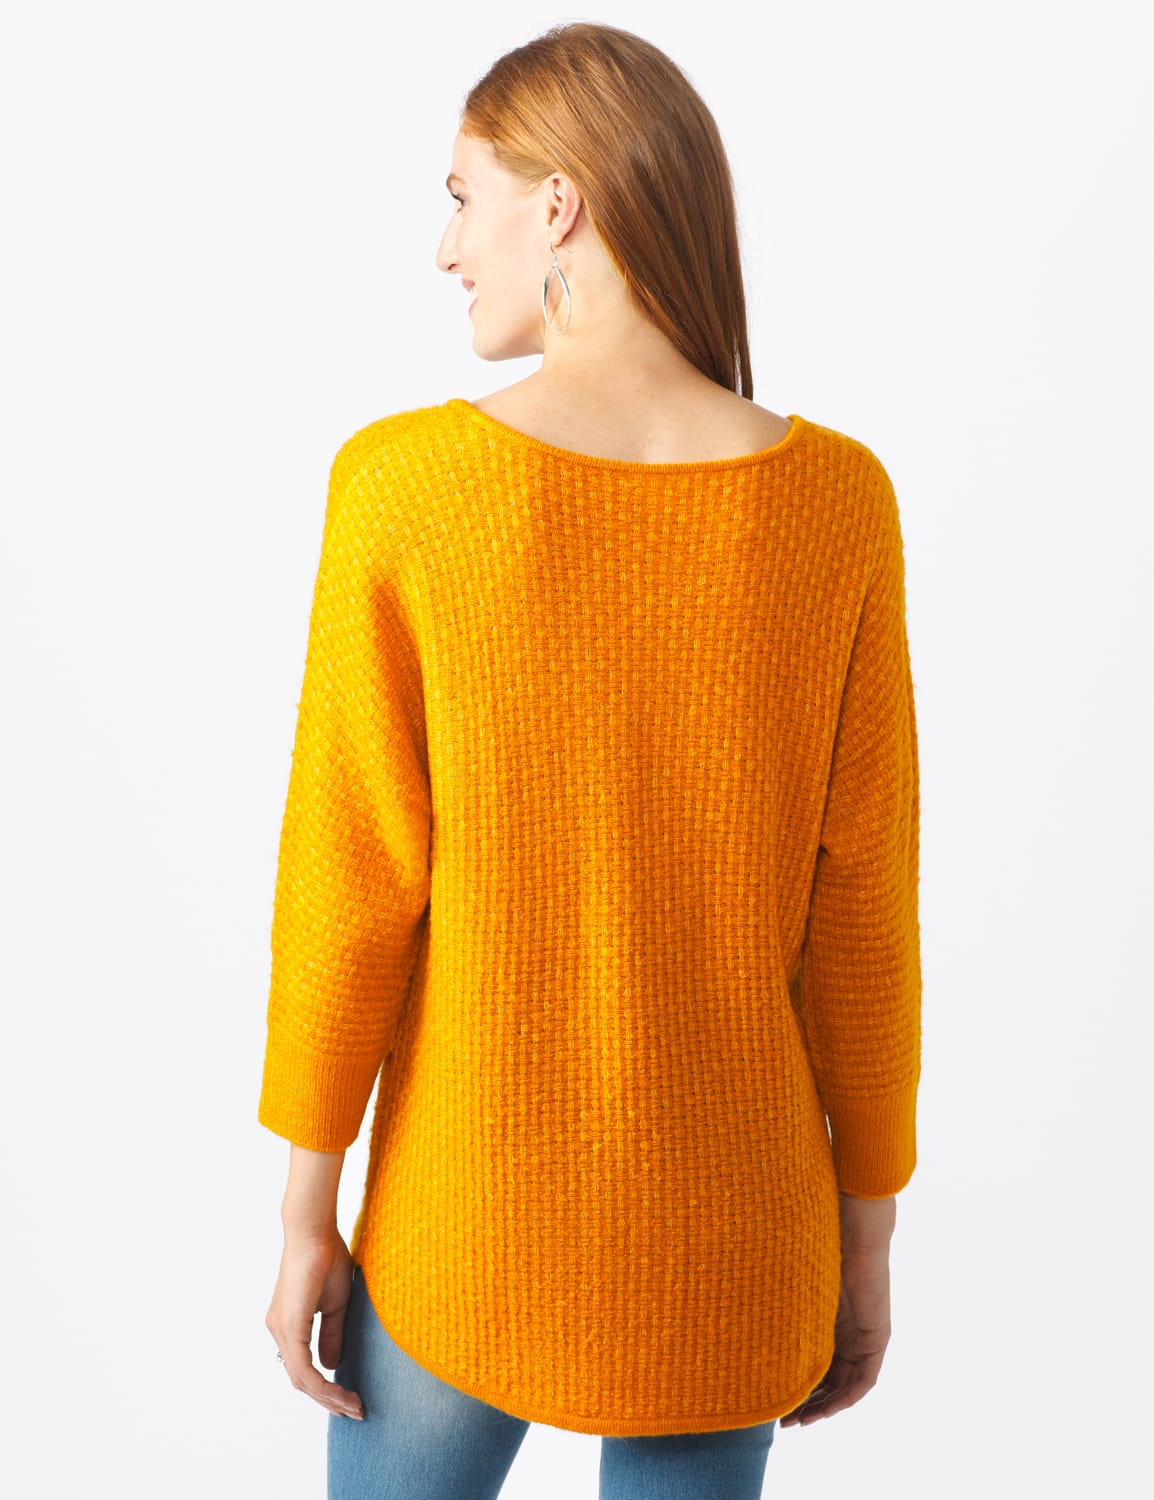 Westport Basketweave Stitch Curved Hem Sweater - Misses - Acorn Squash - Back